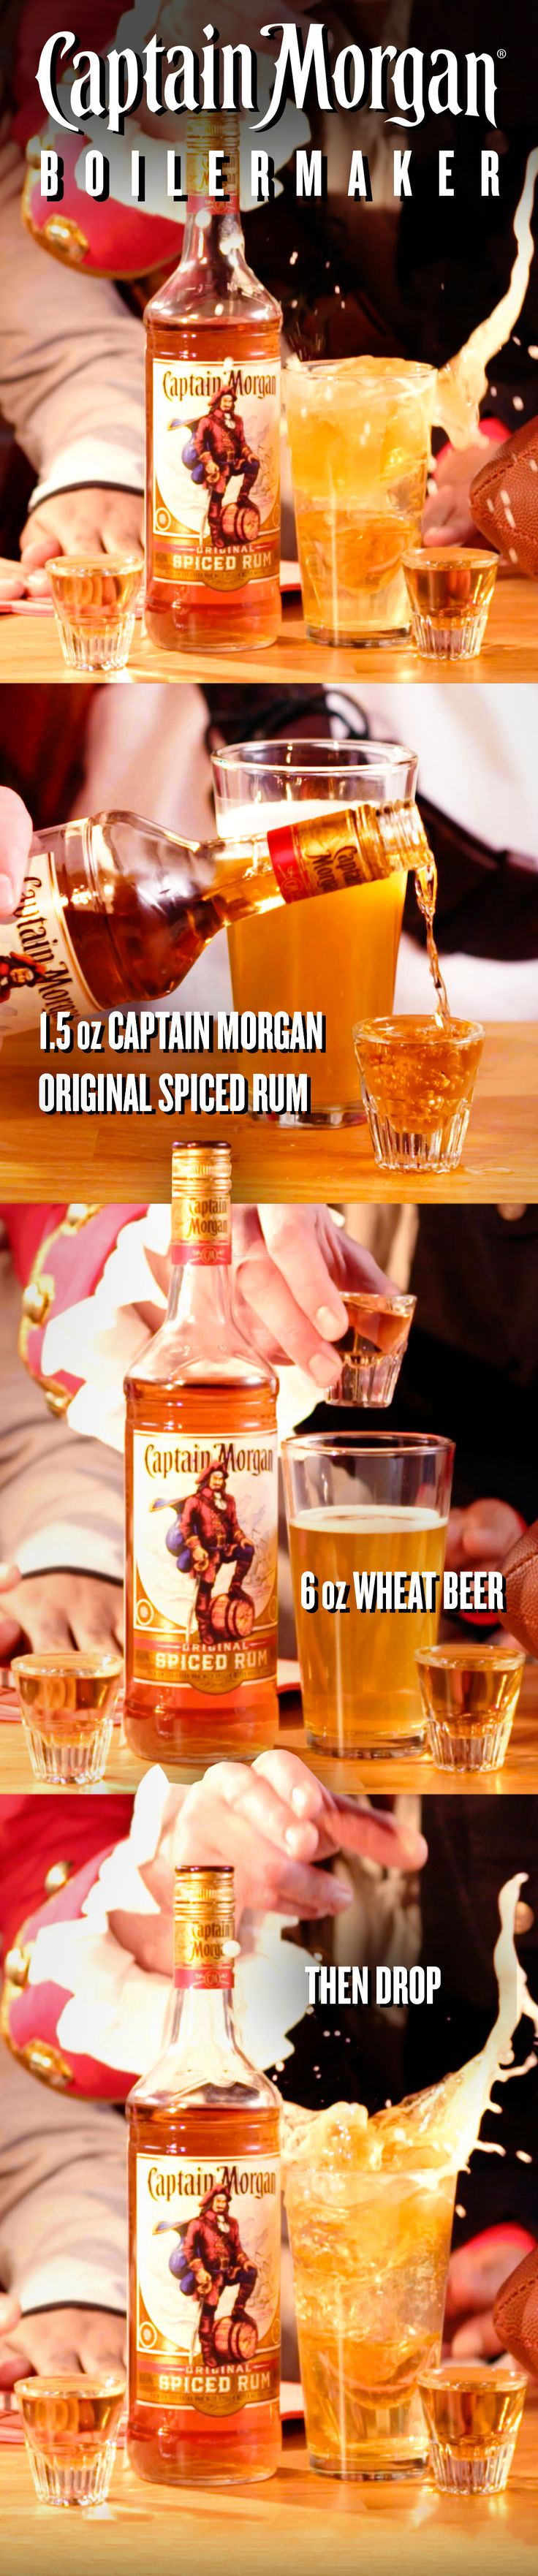 Gear up on game day and follow the Captain's play call for the perfect drink–1.5 oz of Captain Morgan Original Spiced Rum and 6 oz of your favorite wheat beer. Just pour, drop, and cheer on your alma mater with the Captain's Boilermaker.